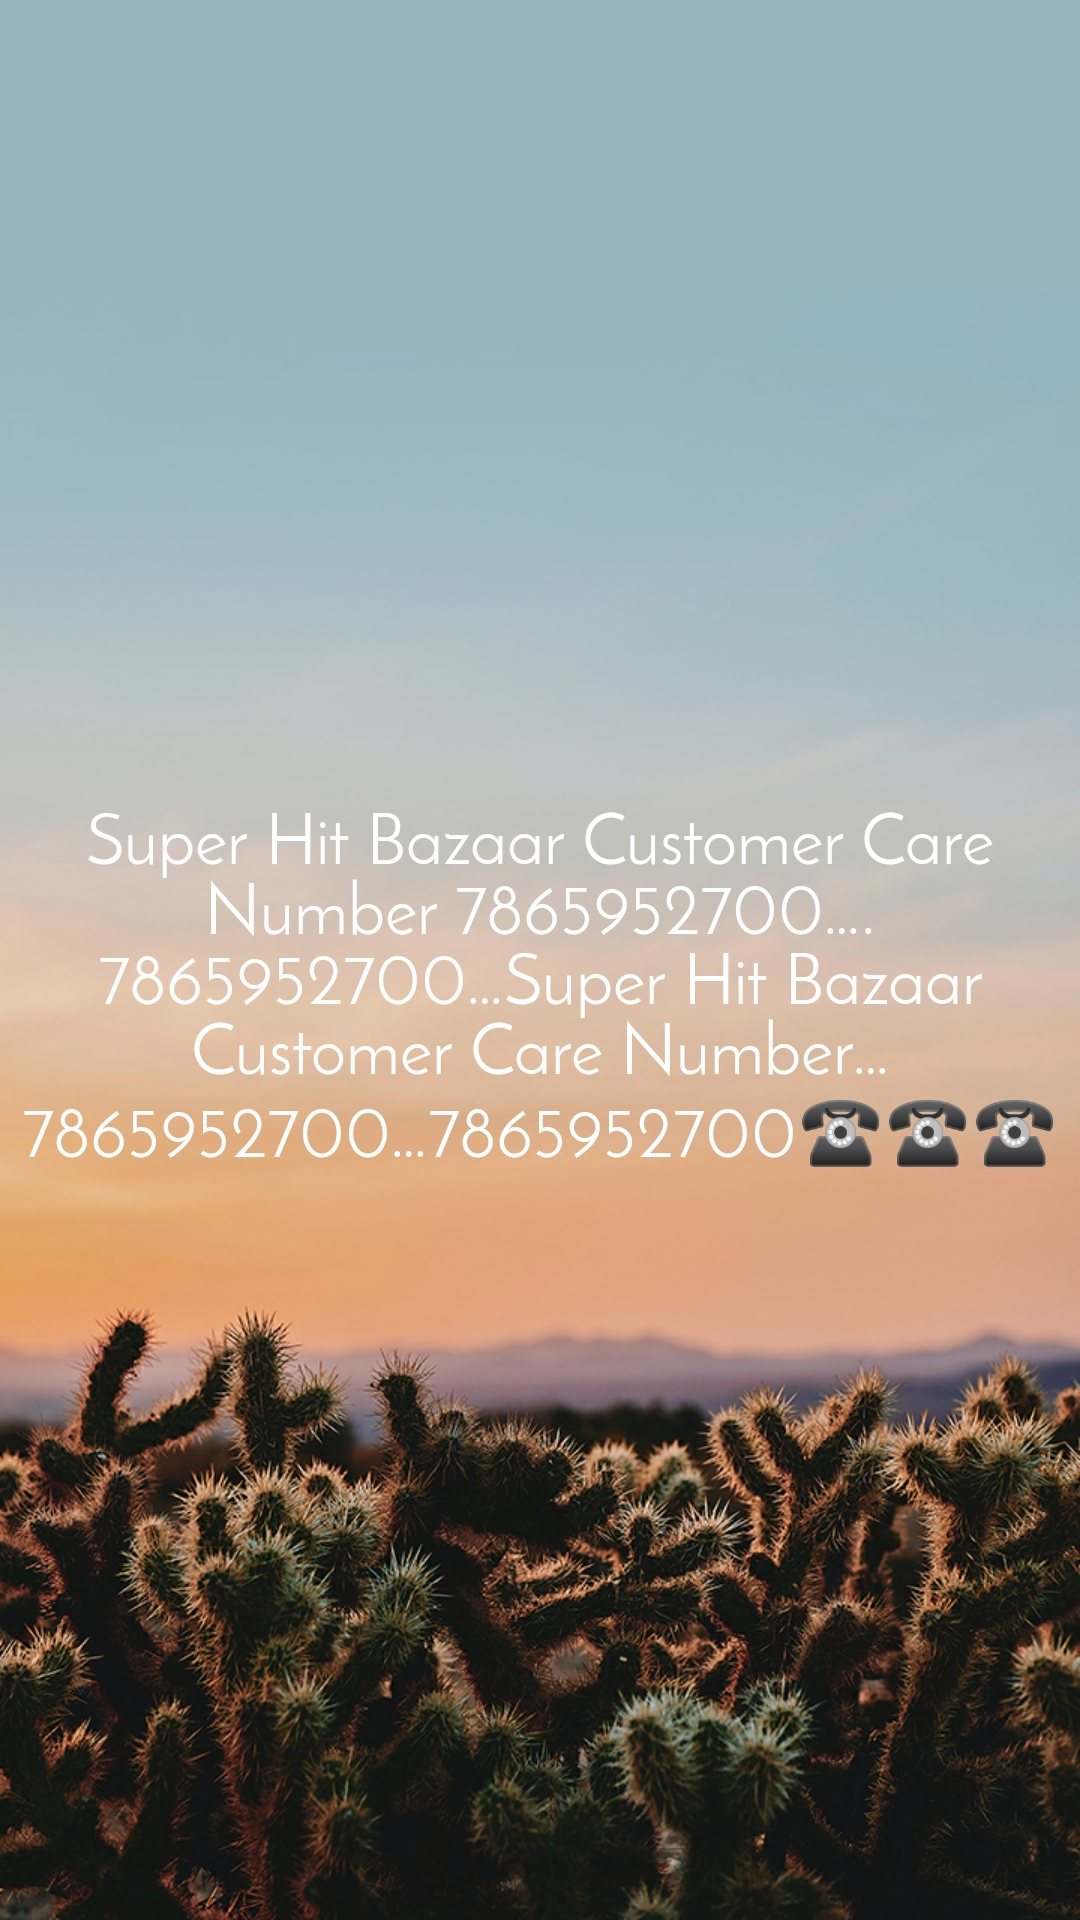 Super Hit Bazaar Customer Care Number 7865952700….7865952700…Super Hit Bazaar Customer Care Number…7865952700…7865952700☎️☎️☎️